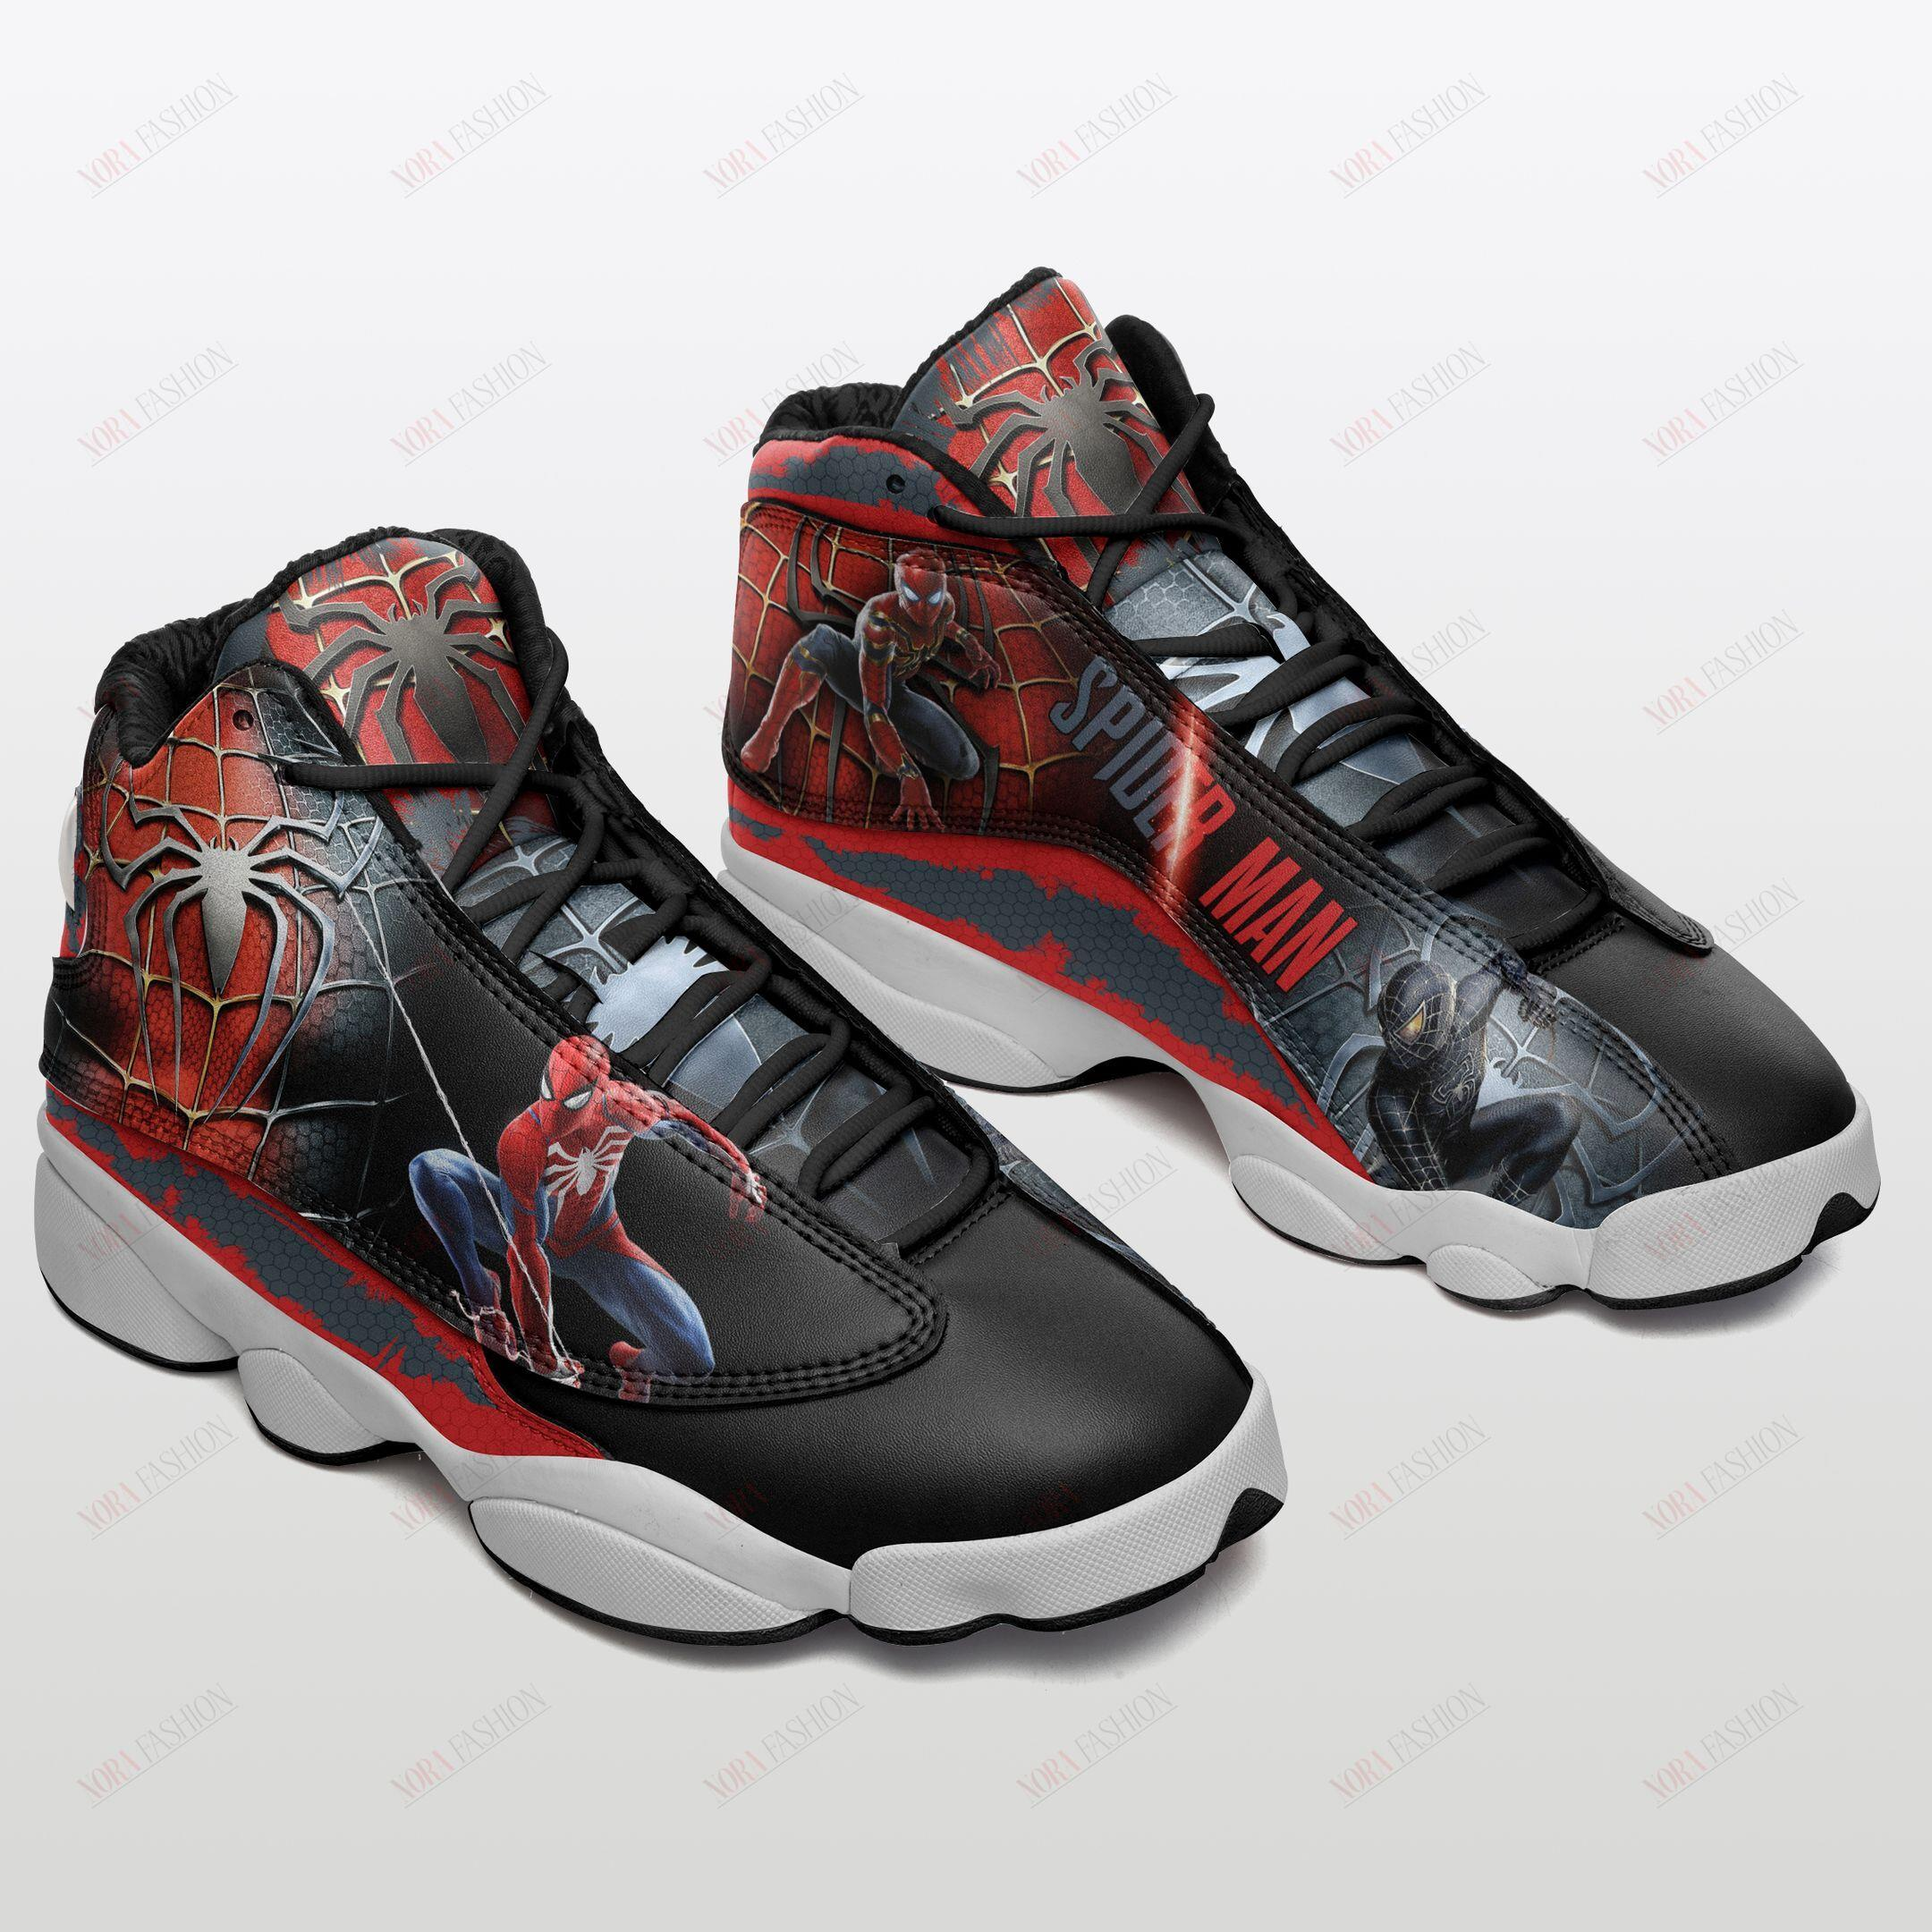 Spider Man Air Jordan 13 Sneakers Sport Shoes